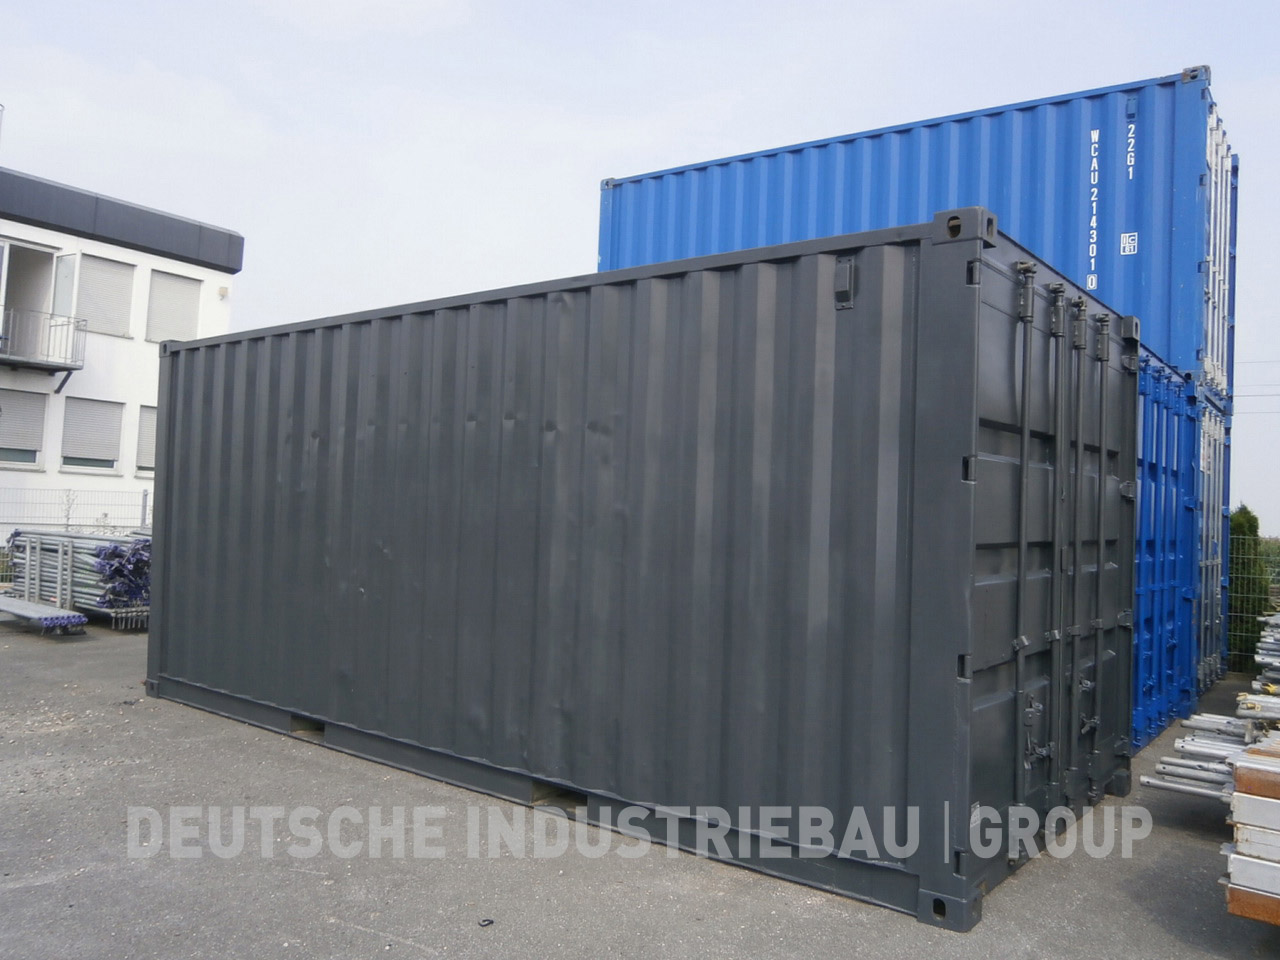 deutsche industriebau group seecontainer 20 fu ab lager. Black Bedroom Furniture Sets. Home Design Ideas